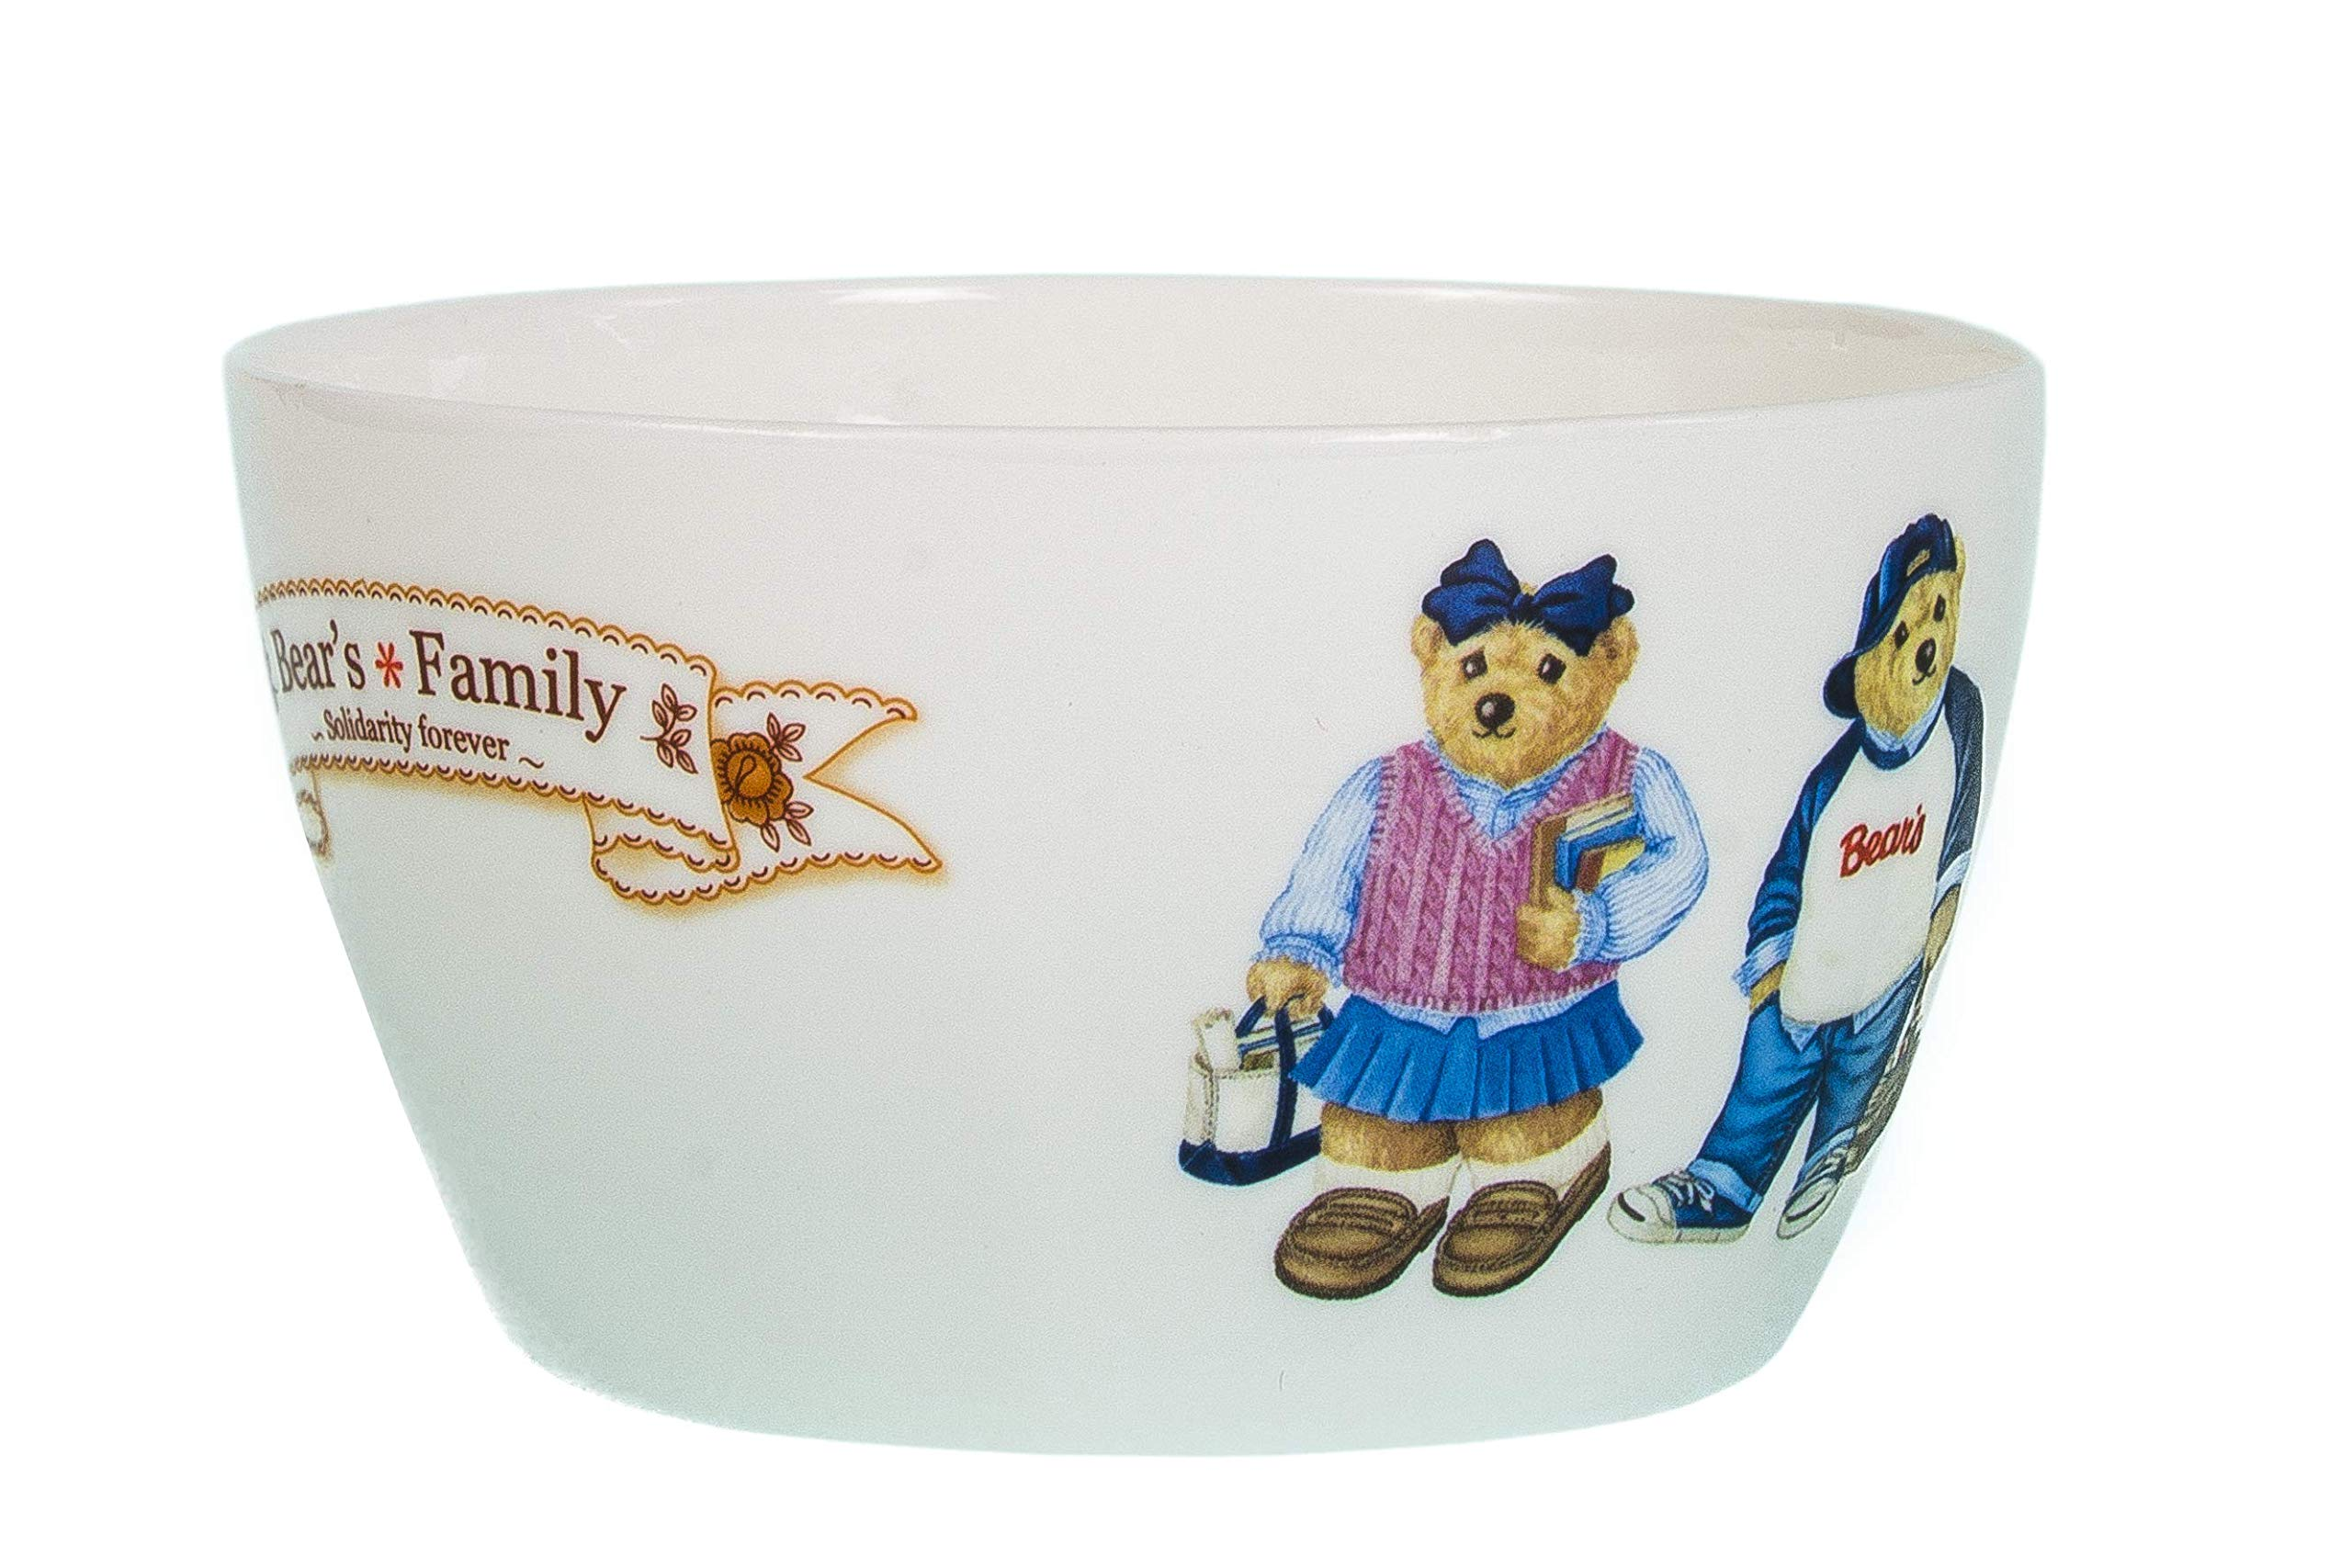 Teddy Bear Bowl: Pink and Blue, 15 Fl Oz, Premium Ceramic, BPA-Free, Kids Bowl, Cereal Bowl, Multipurpose Bowl for Salad, Fruit, Dessert, and Snacks, Perfect for Kids and Adults